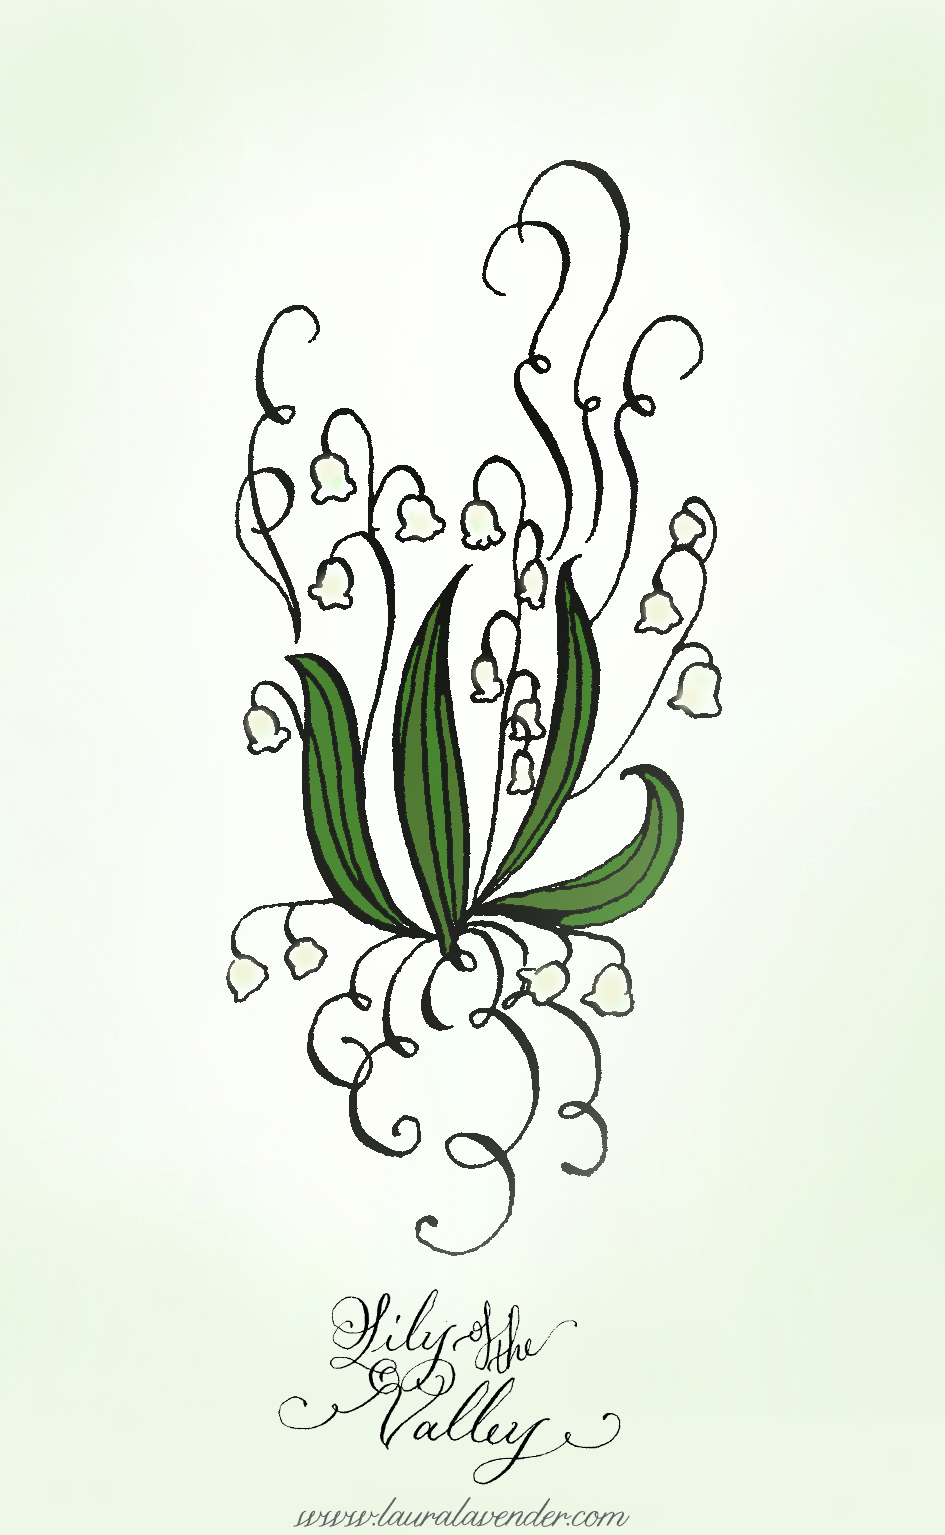 lily of the valley drawing art illustration